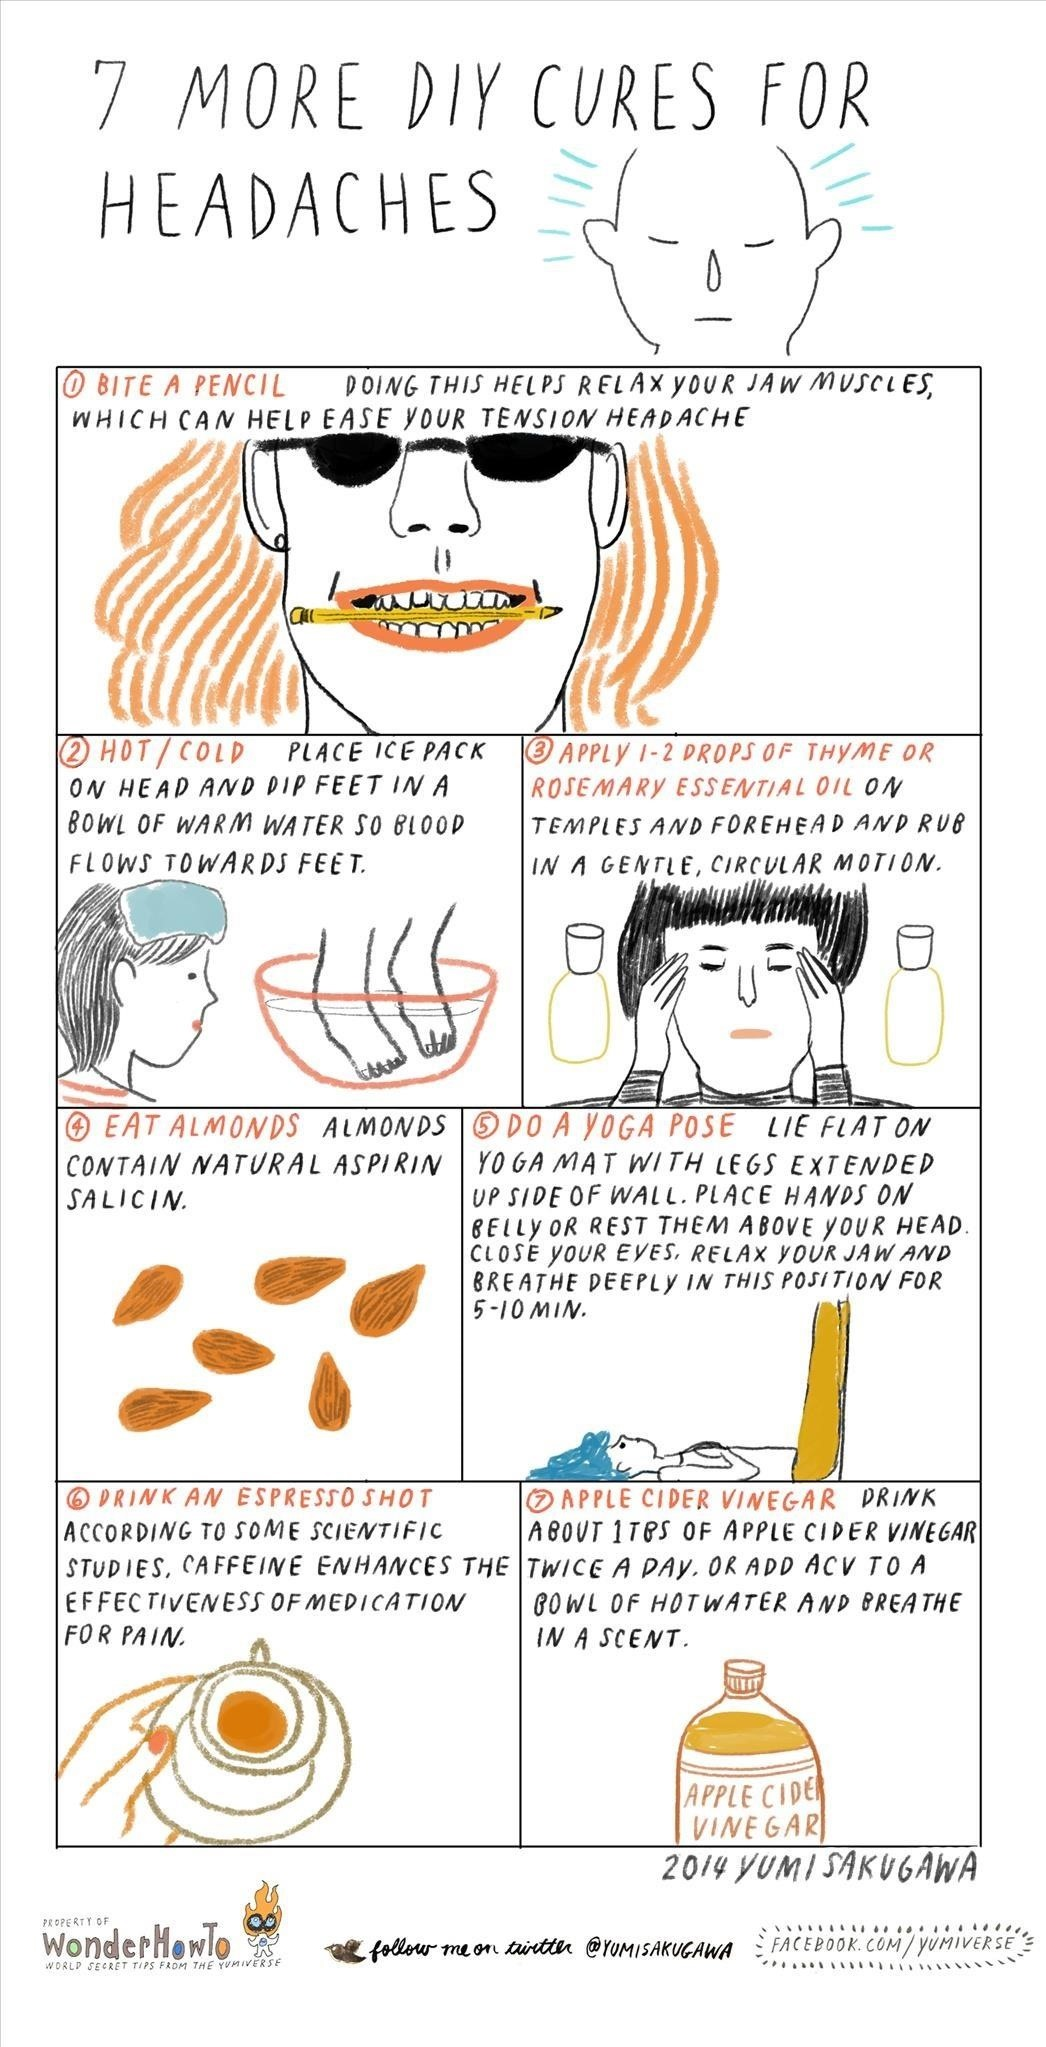 7 More DIY Cures for Headaches